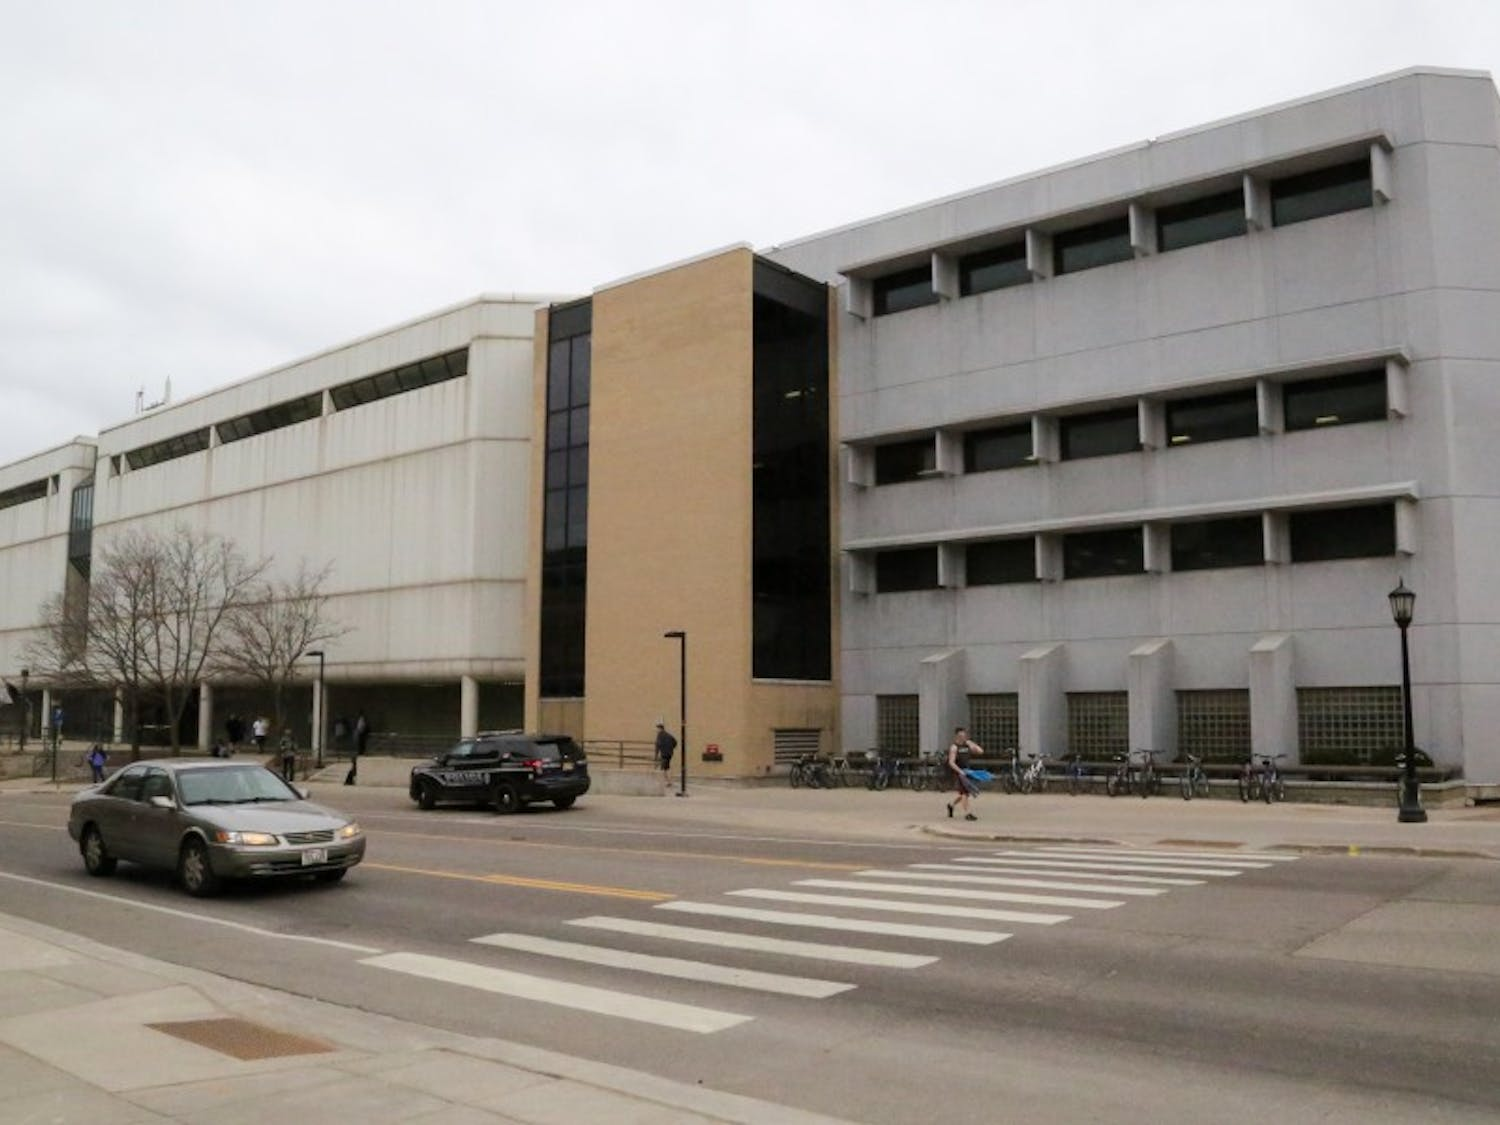 The SERF is expected to close permanently late this summer before being torn down and replaced.